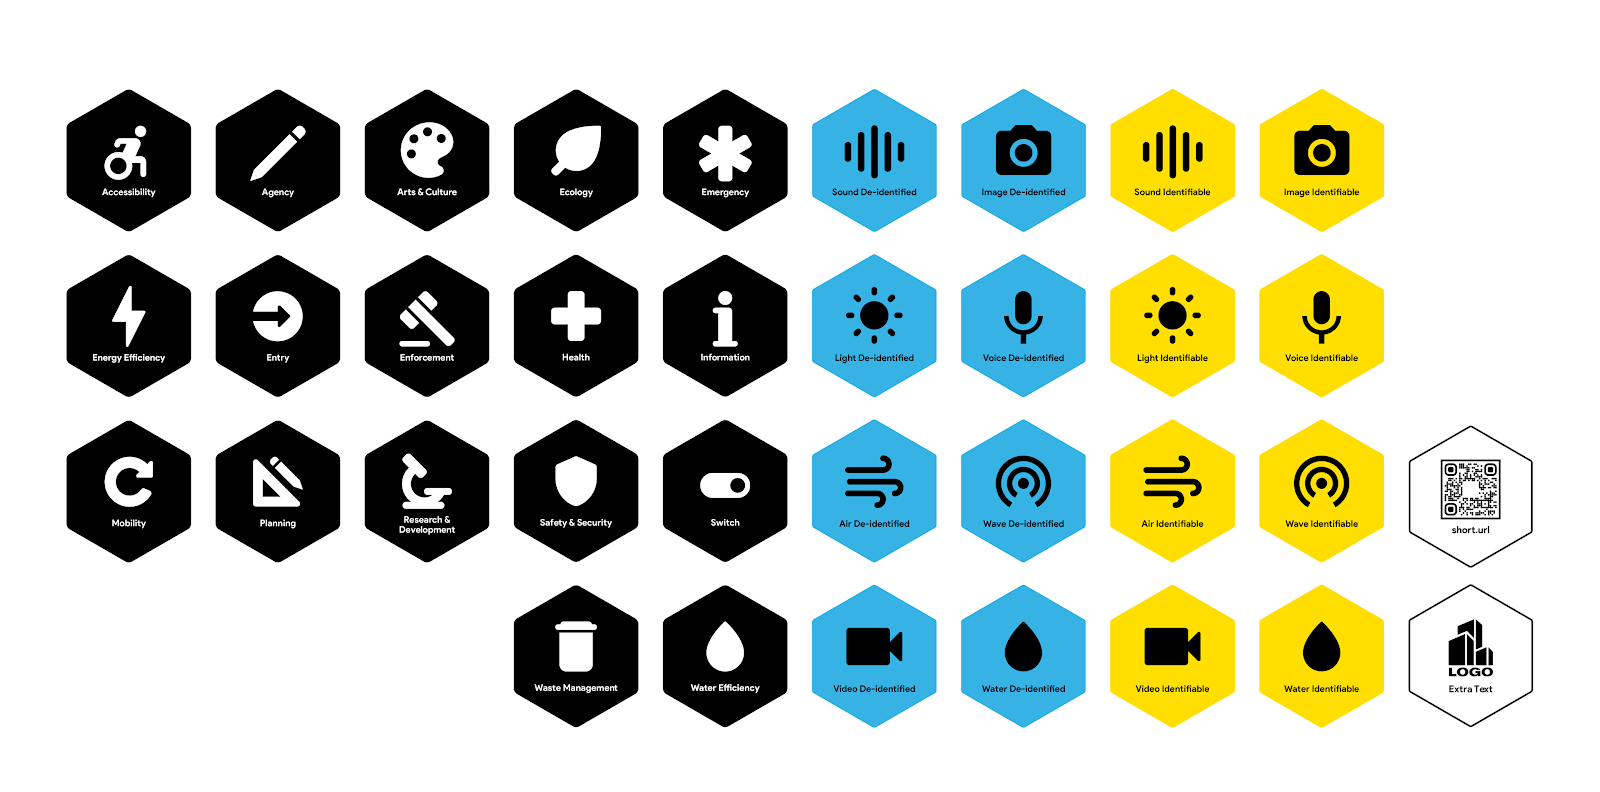 How can we bring transparency to urban tech? These icons are a first step.